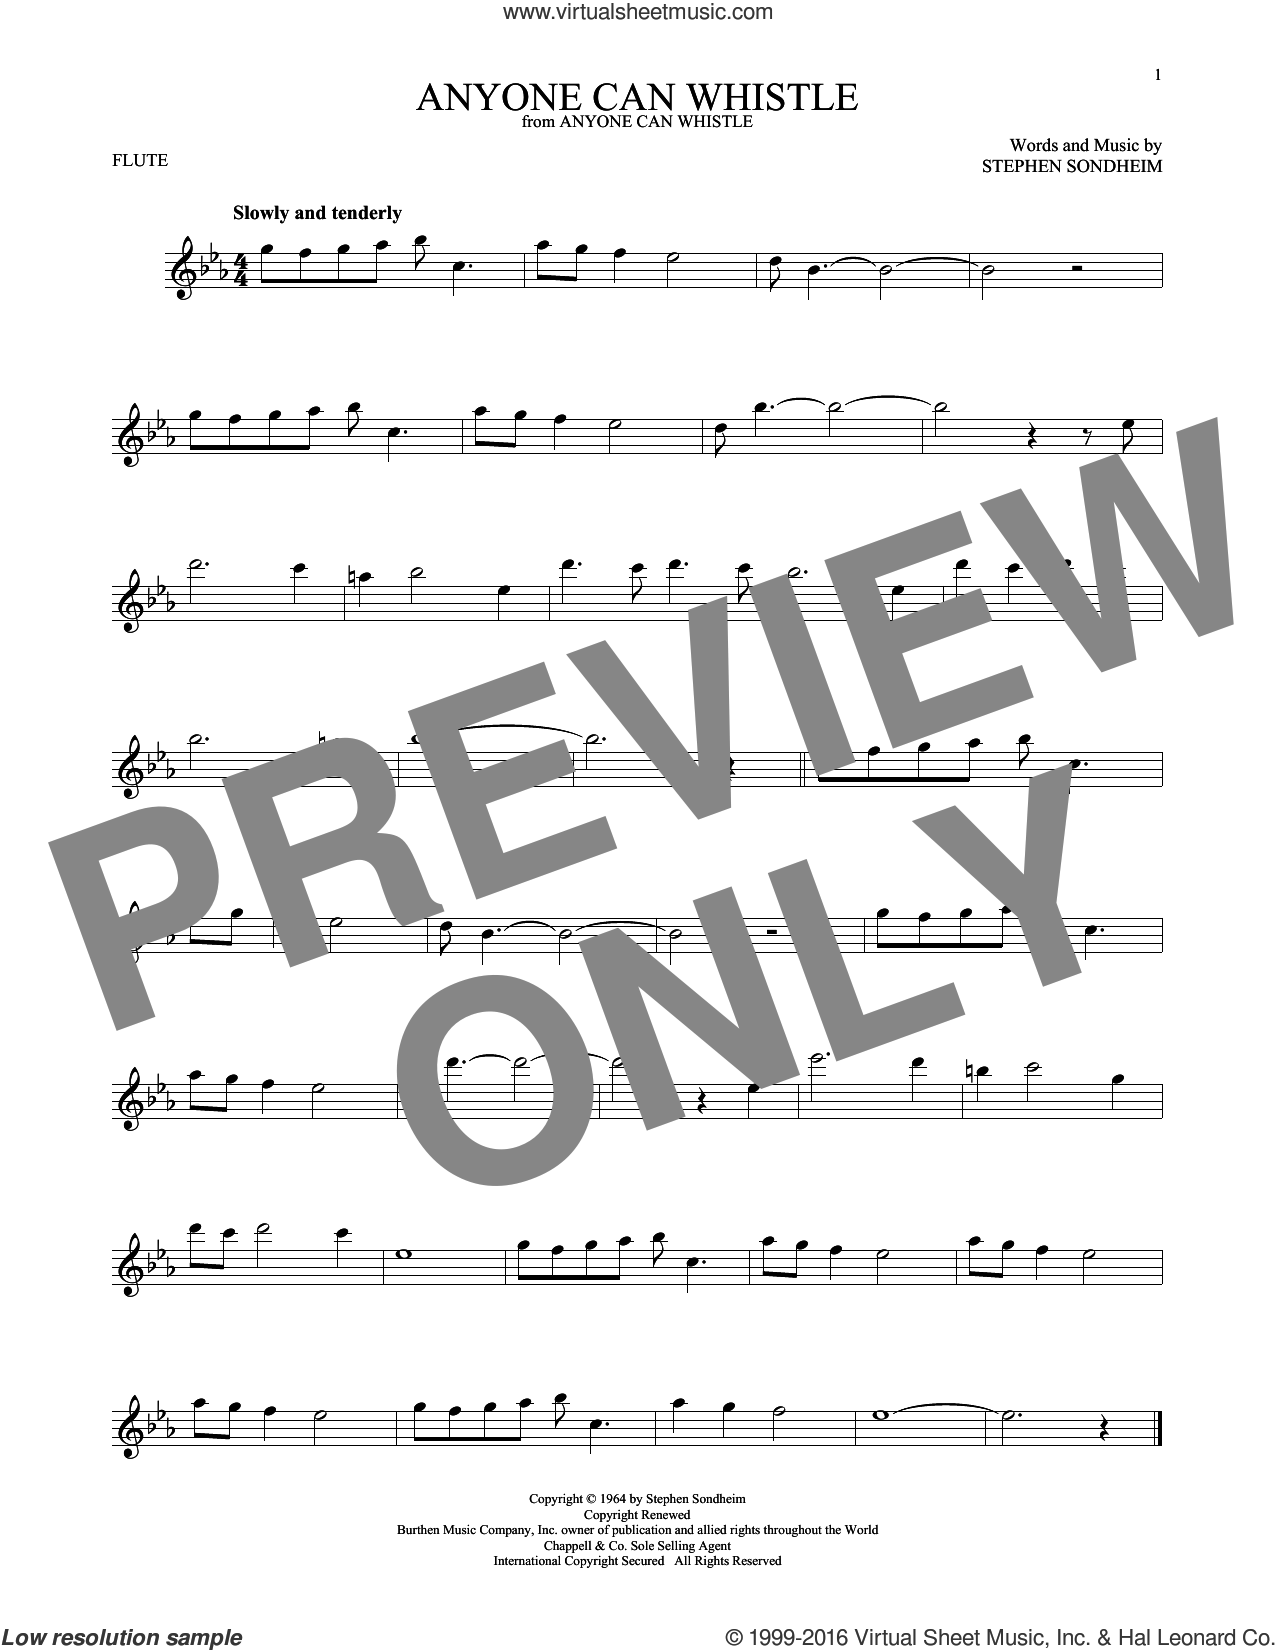 Anyone Can Whistle sheet music for flute solo by Stephen Sondheim. Score Image Preview.